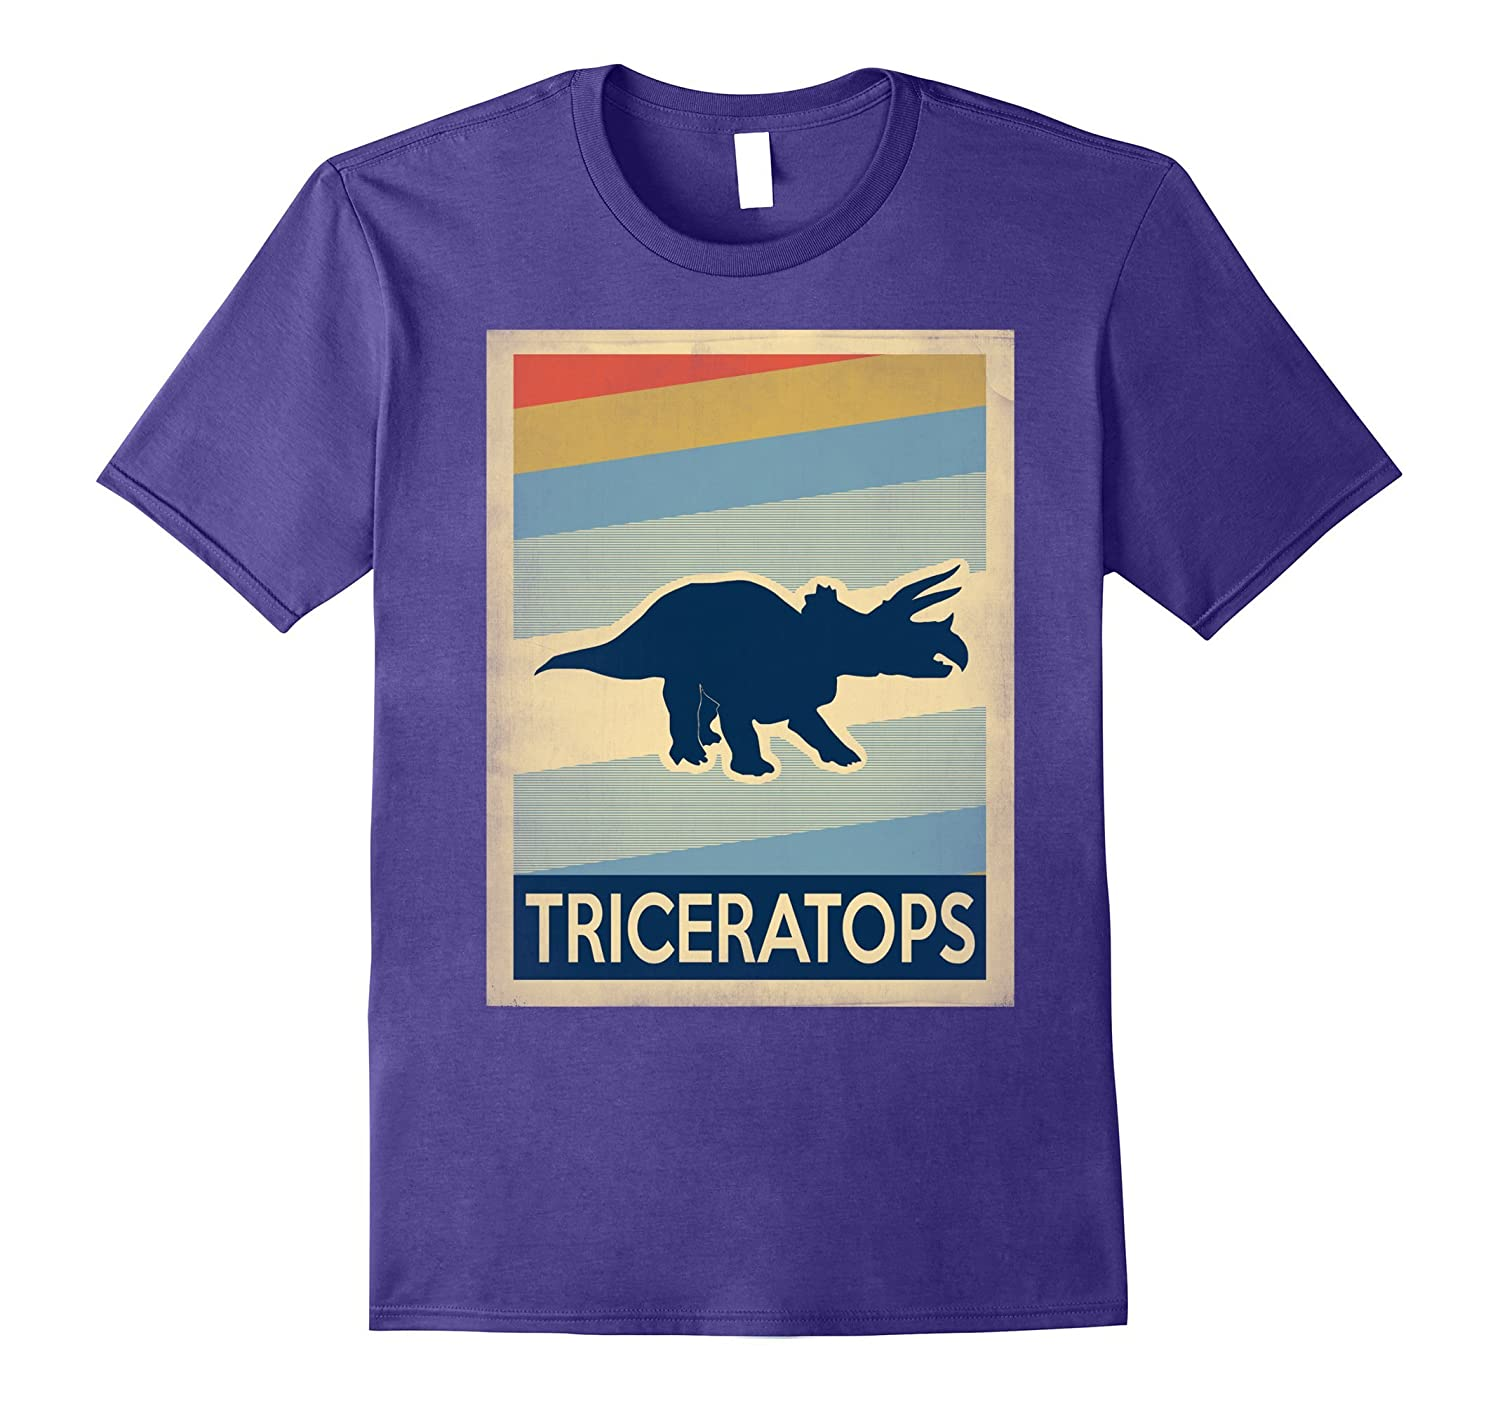 Vintage style triceratops tshirt-Art